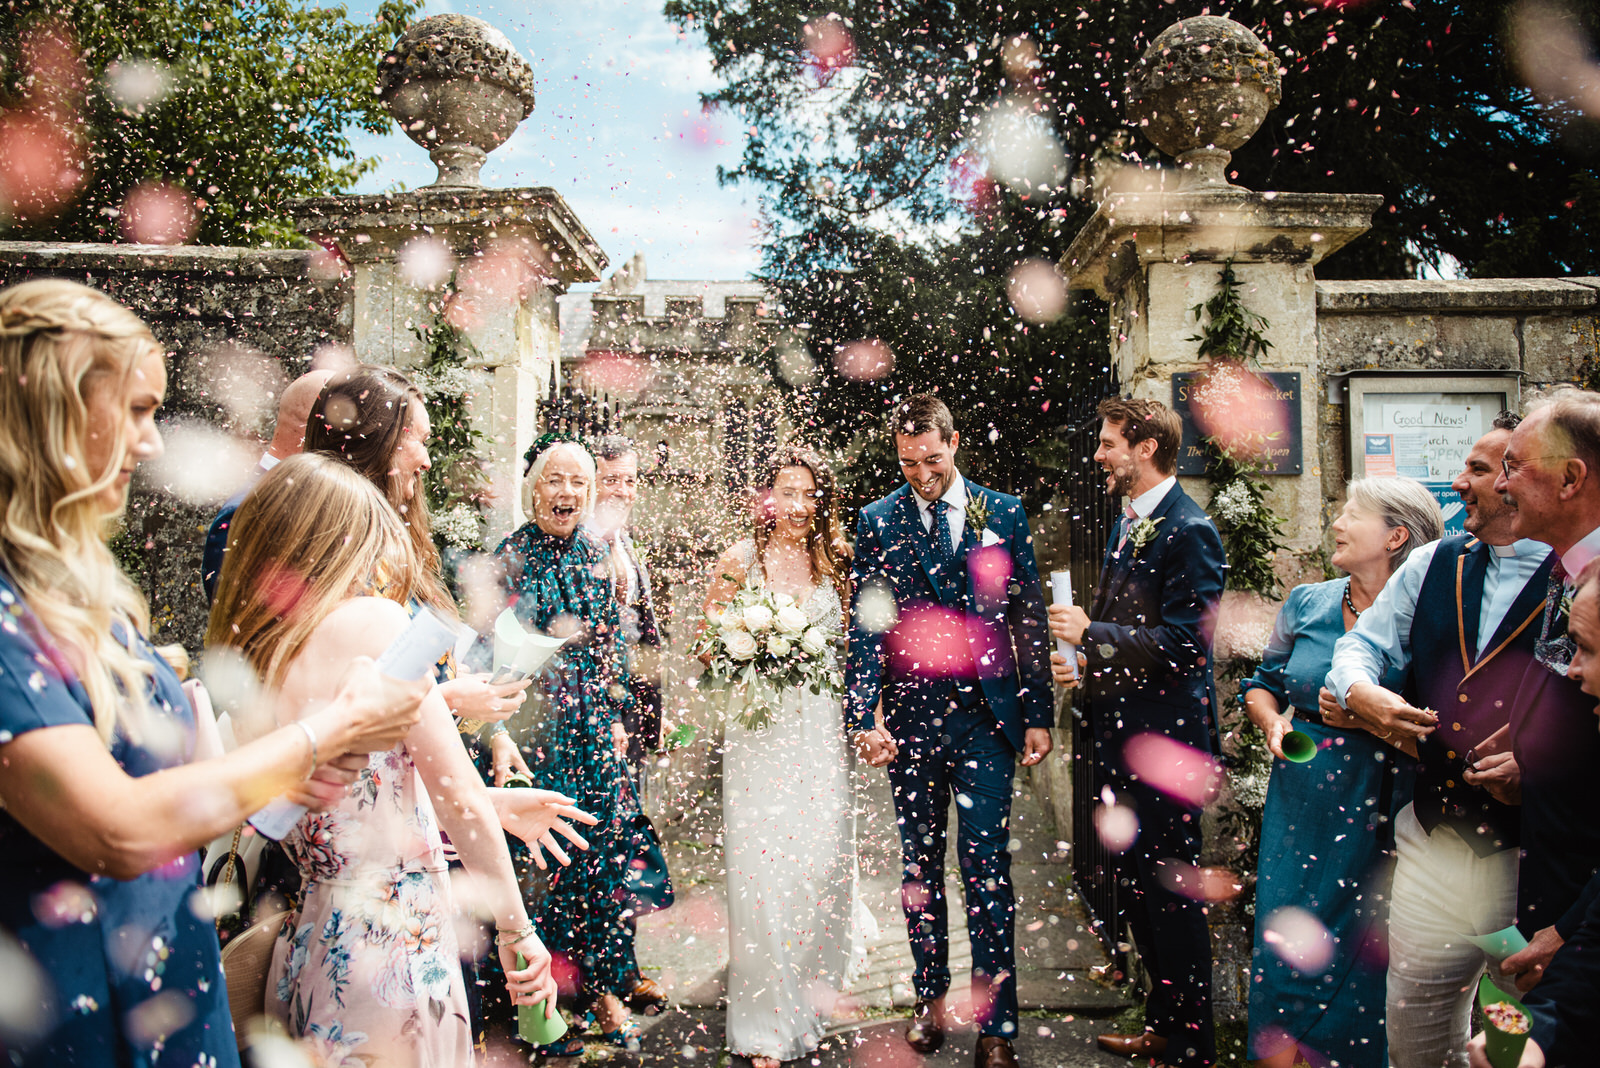 Masses of confetti at Tom and Jocelyns Bath wedding in somerset